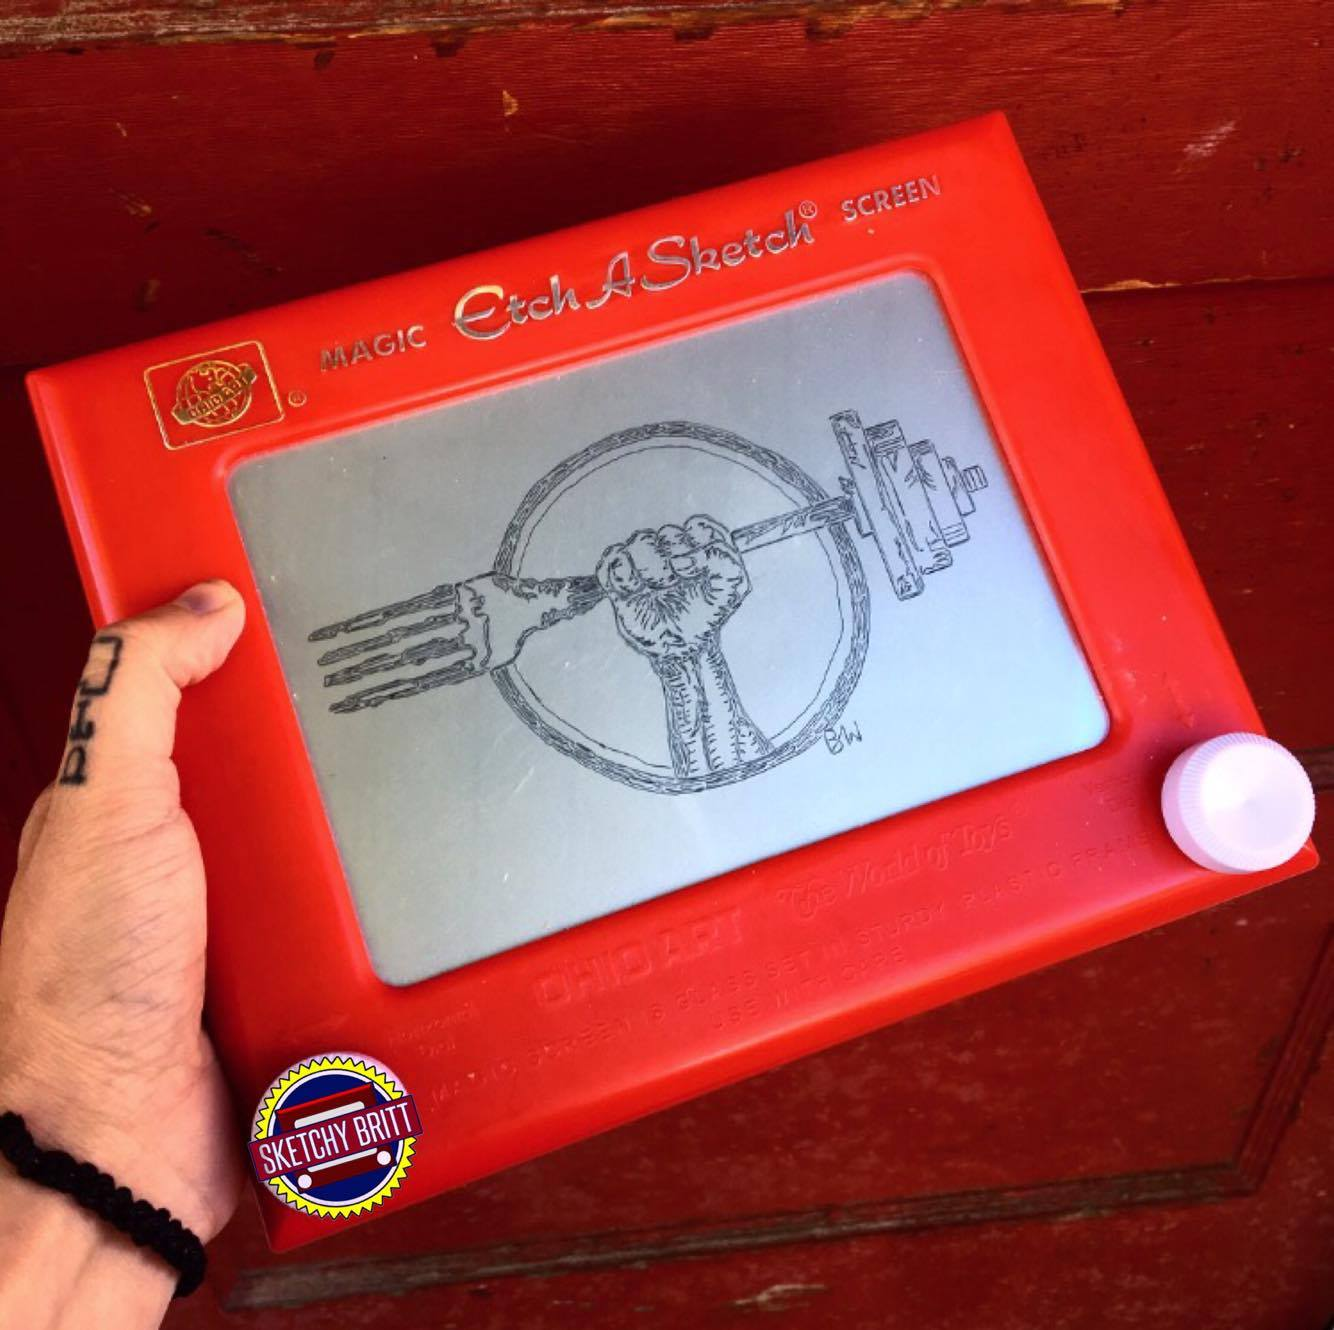 Dirt in Your Skirt Etch-a-sketch by Sketchy Britt